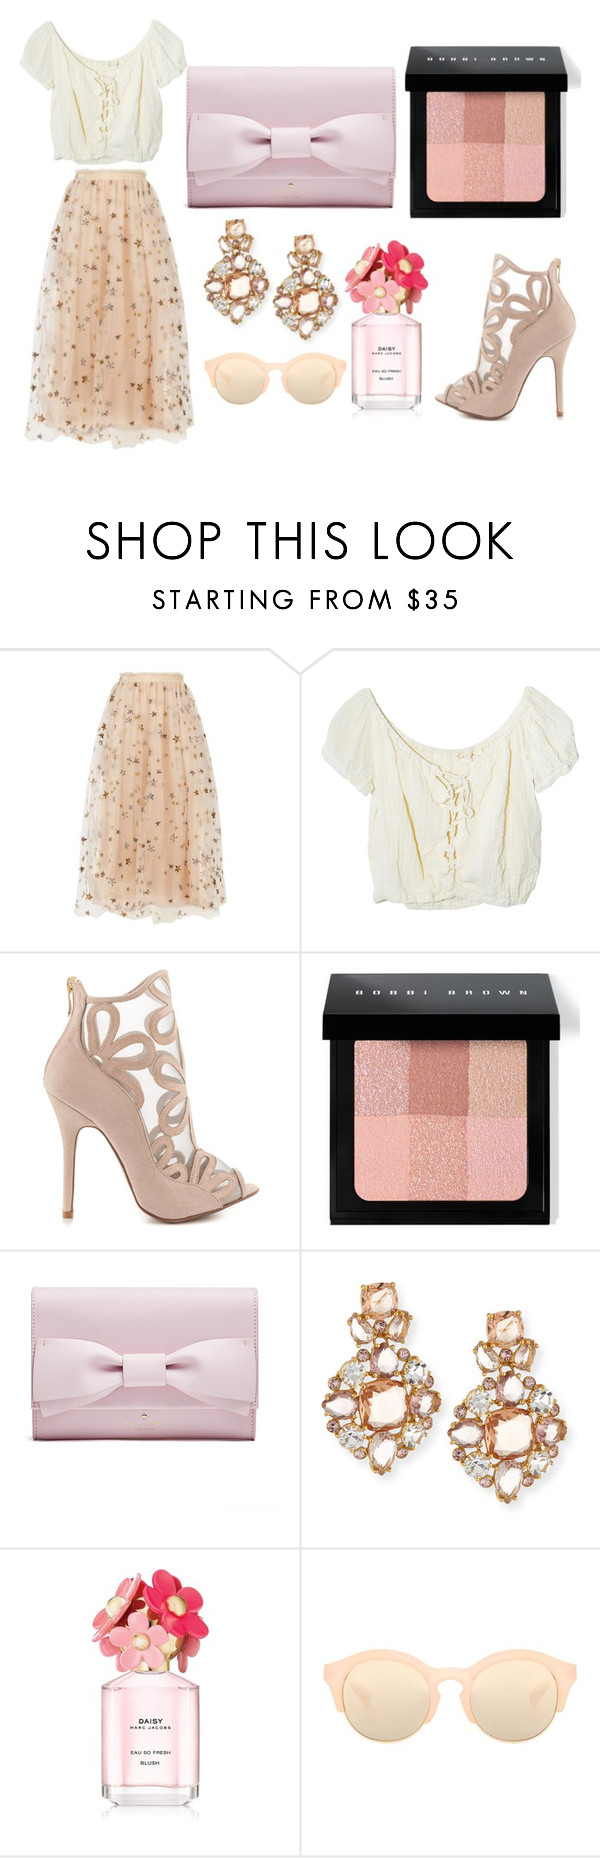 """""""I'm Back"""" by unknown-girl88 ❤ liked on Polyvore featuring Valentino, Jens Pirate Booty, Chinese Laundry, Bobbi Brown Cosmetics, Kate Spade, Marc Jacobs and Le Specs Luxe"""